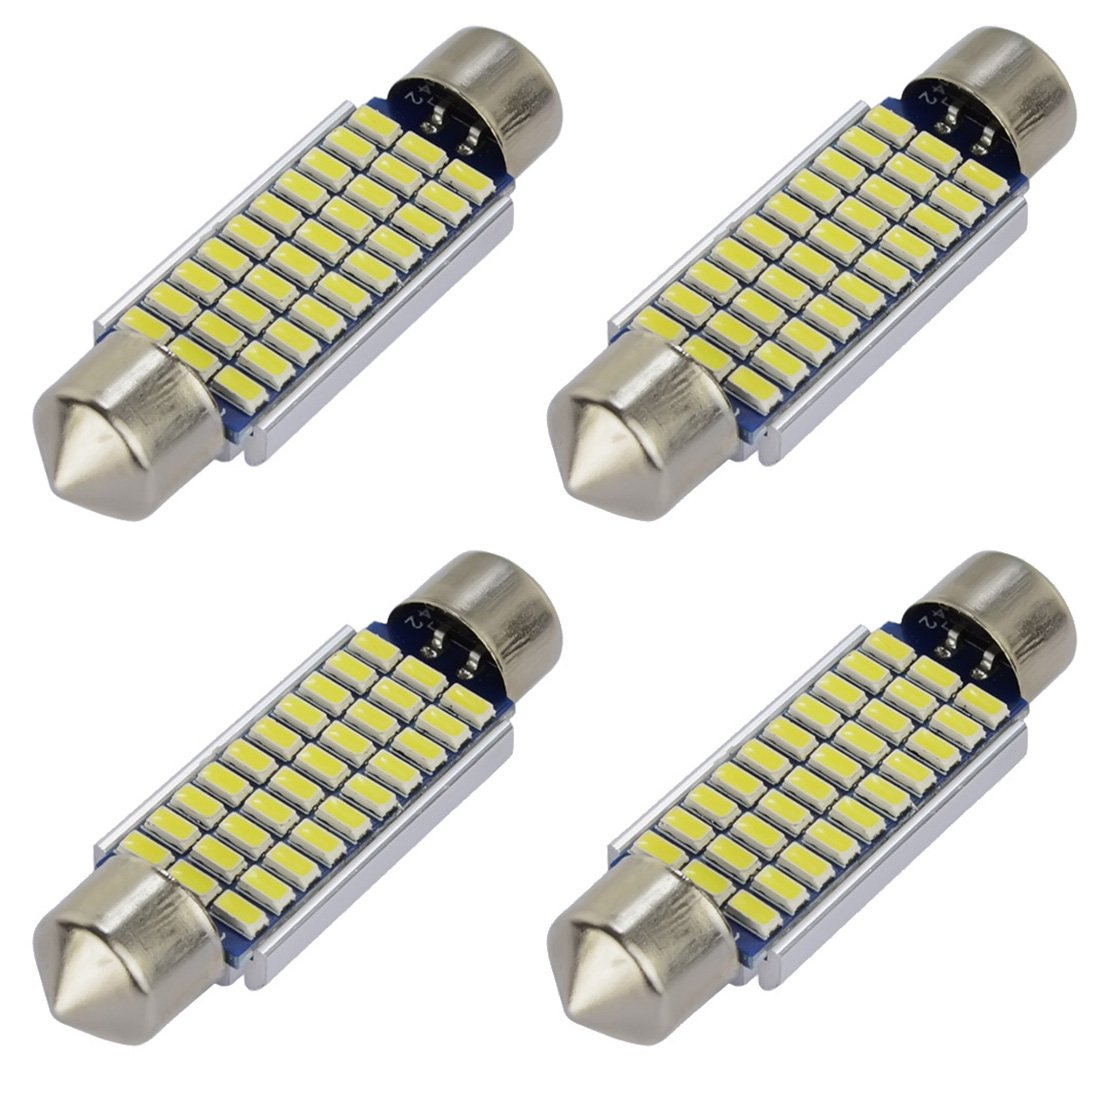 T10 168 Led Car Bulb - Safego 2825 194 W5W 8SMD 3528 1210 LED Light Replacement Bulb For Car Exterior Instrument Side Marker Parking Xenon White 6000K DC 12V pack of 10 XD